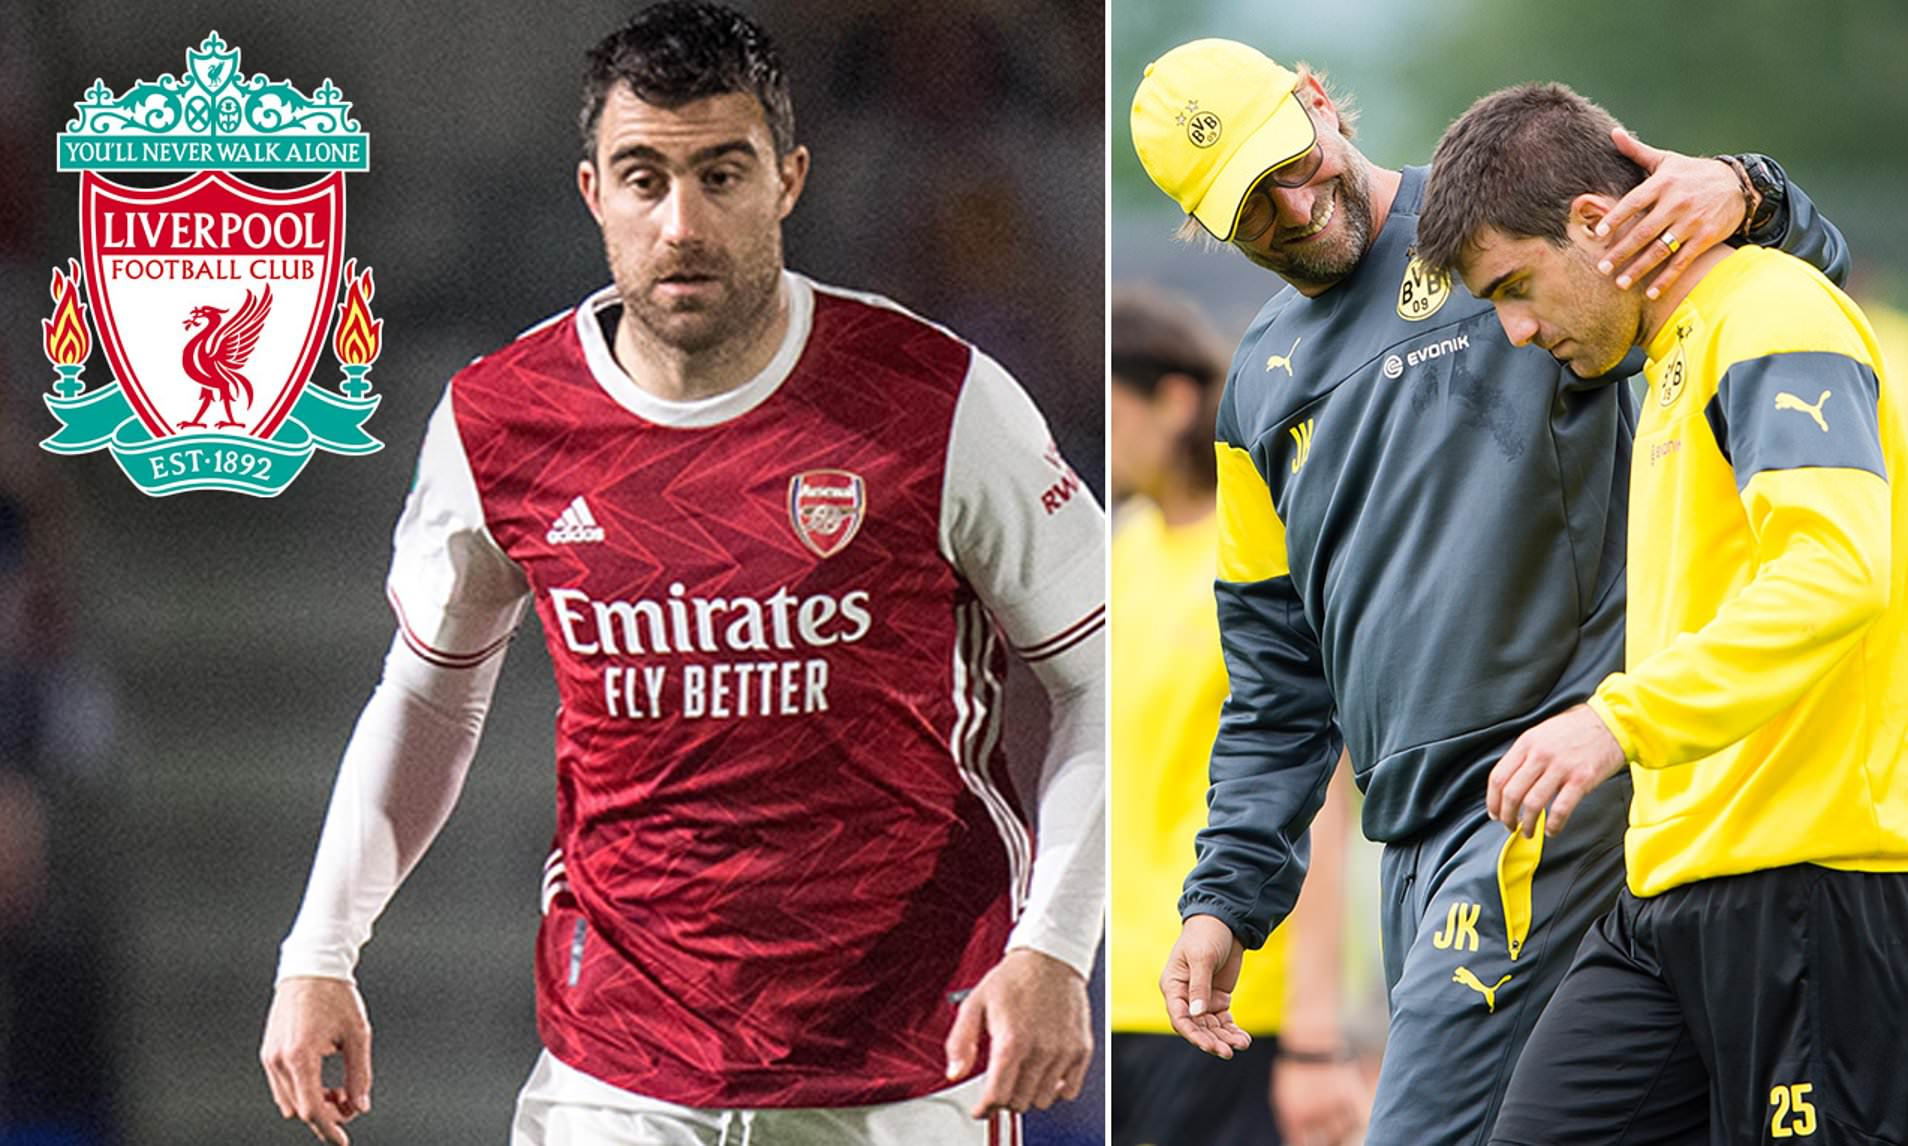 Liverpool 'have made contact with former Arsenal defender Sokratis'